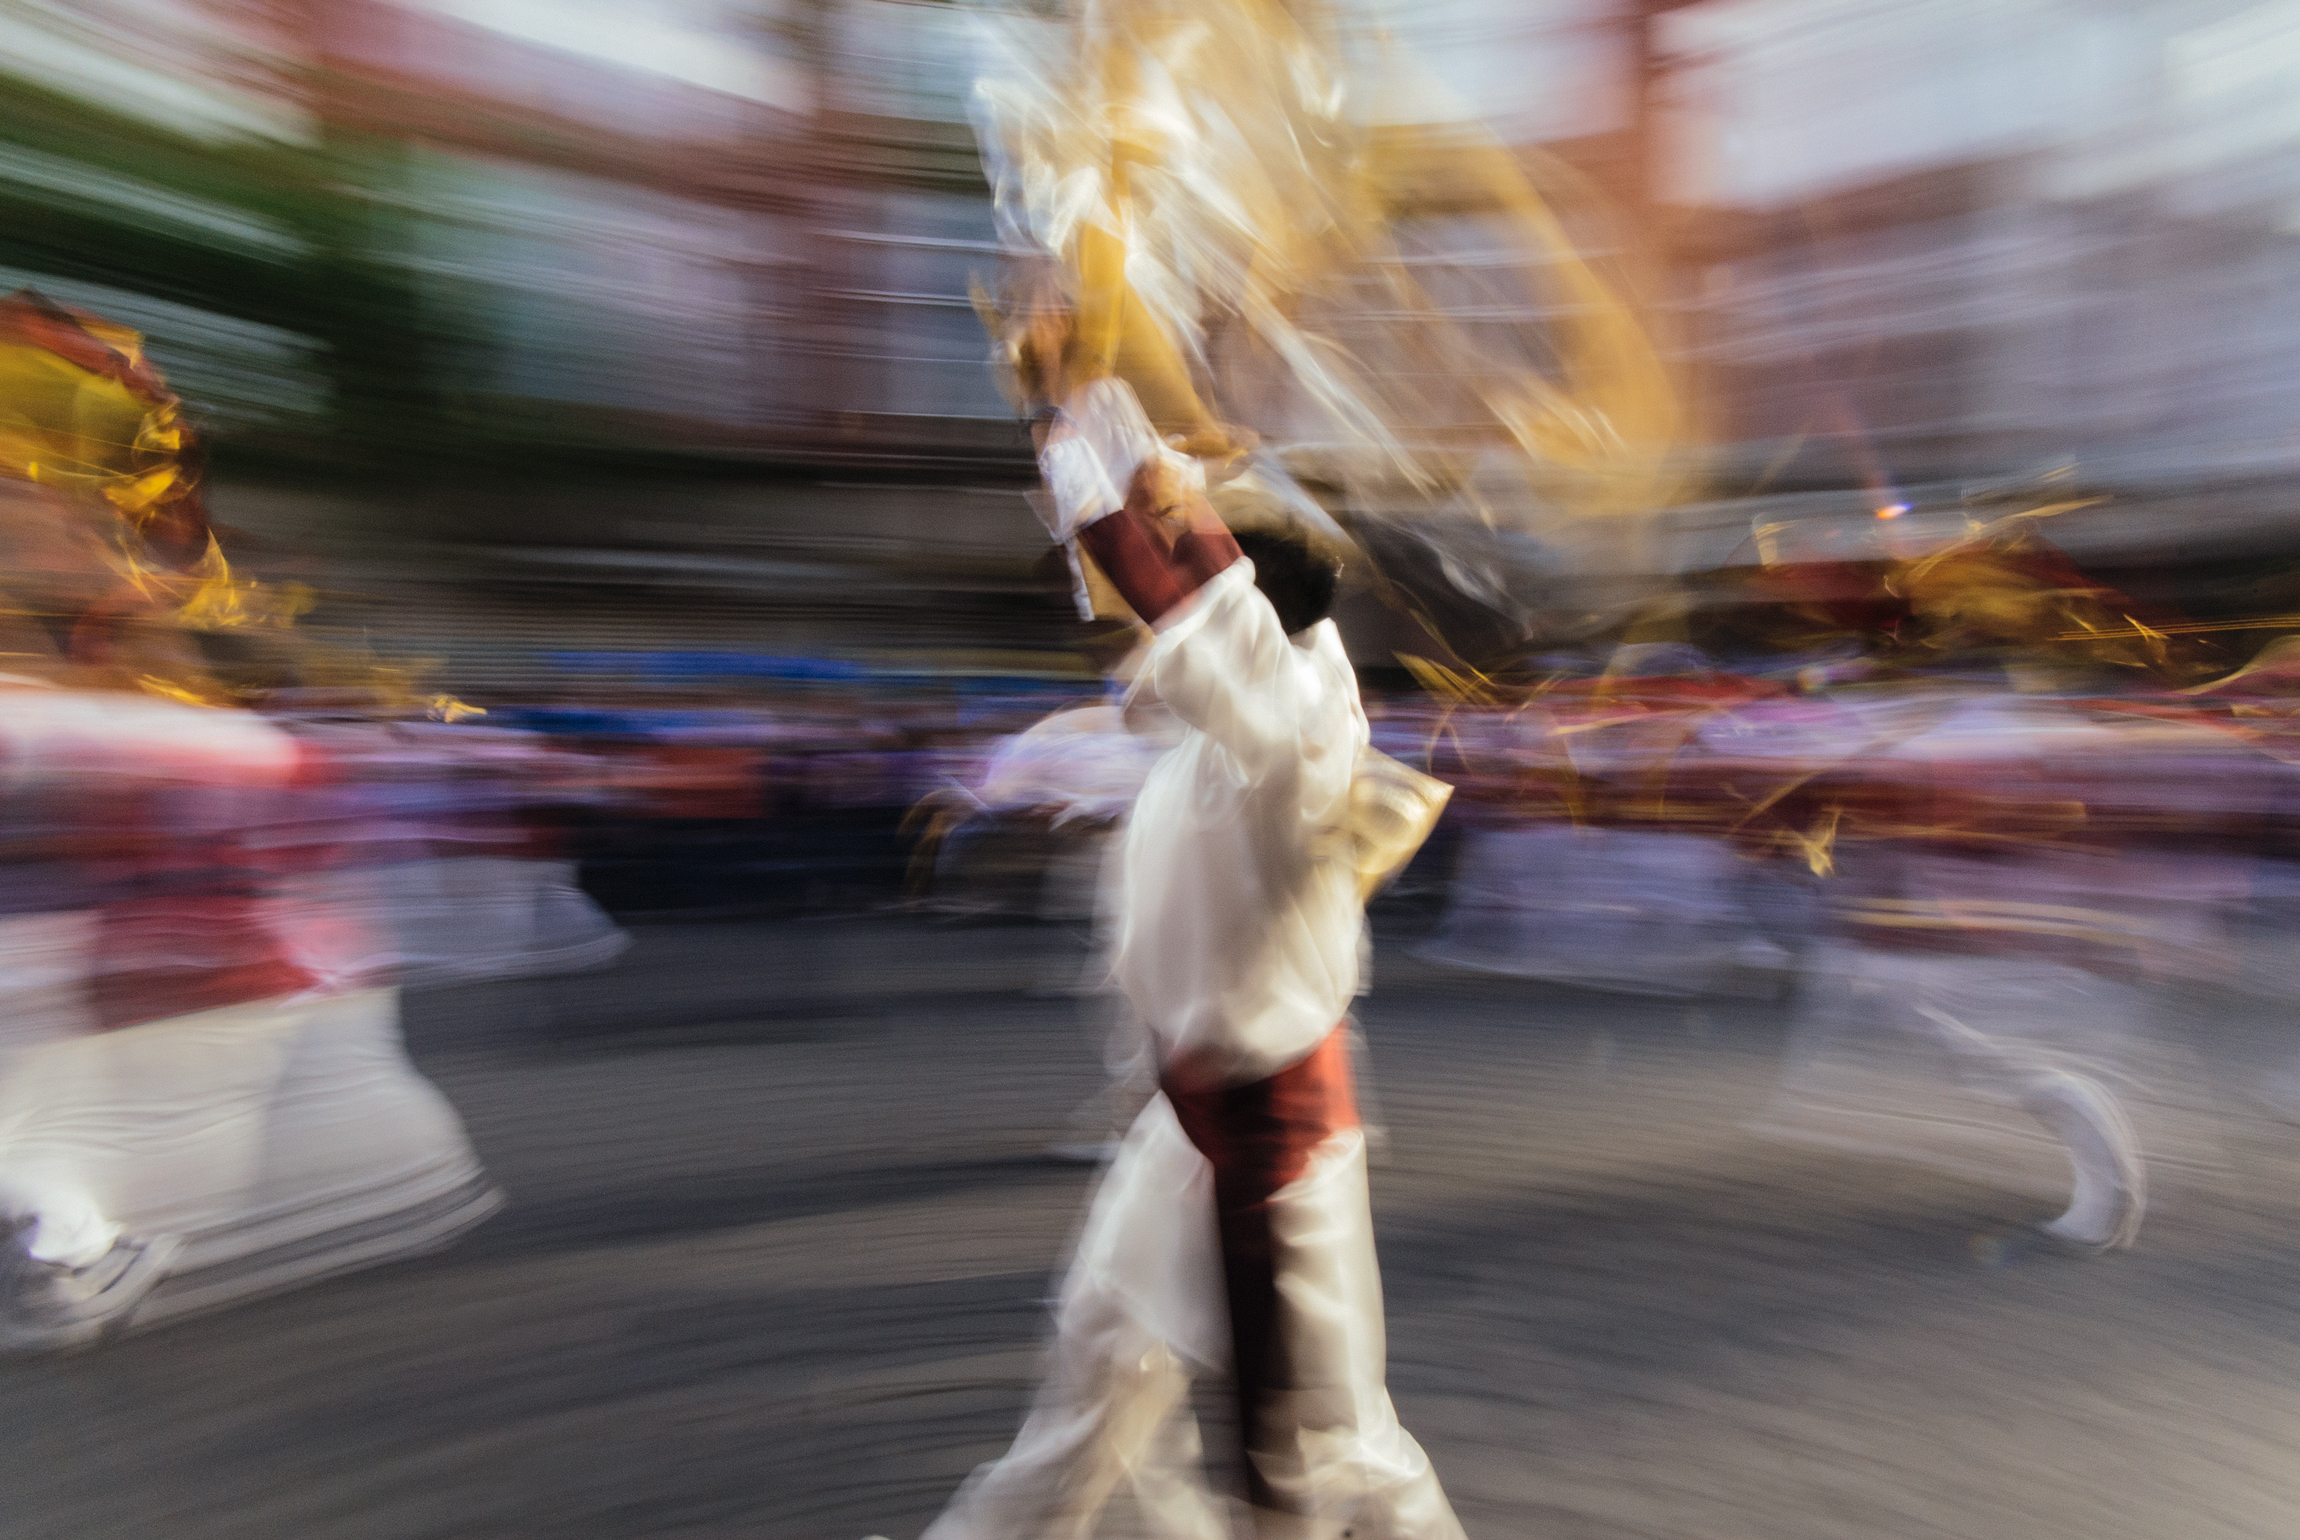 Christian Evangelical Parade (Mexico City) - Blurred